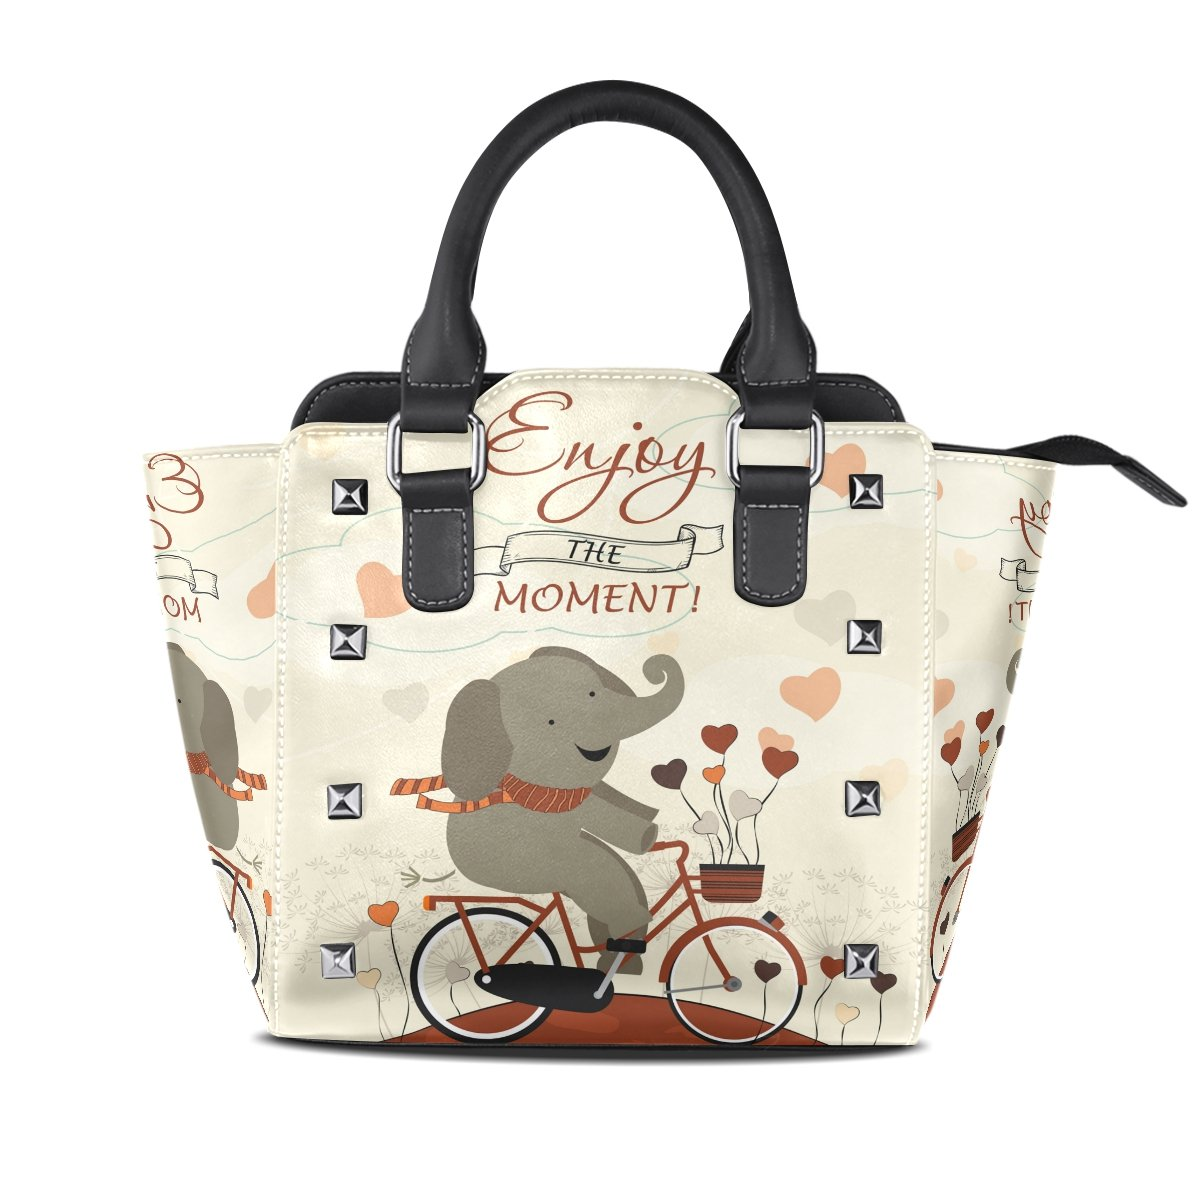 Womens Genuine Leather Hangbags Tote Bags Cute Elephant Purse Shoulder Bags